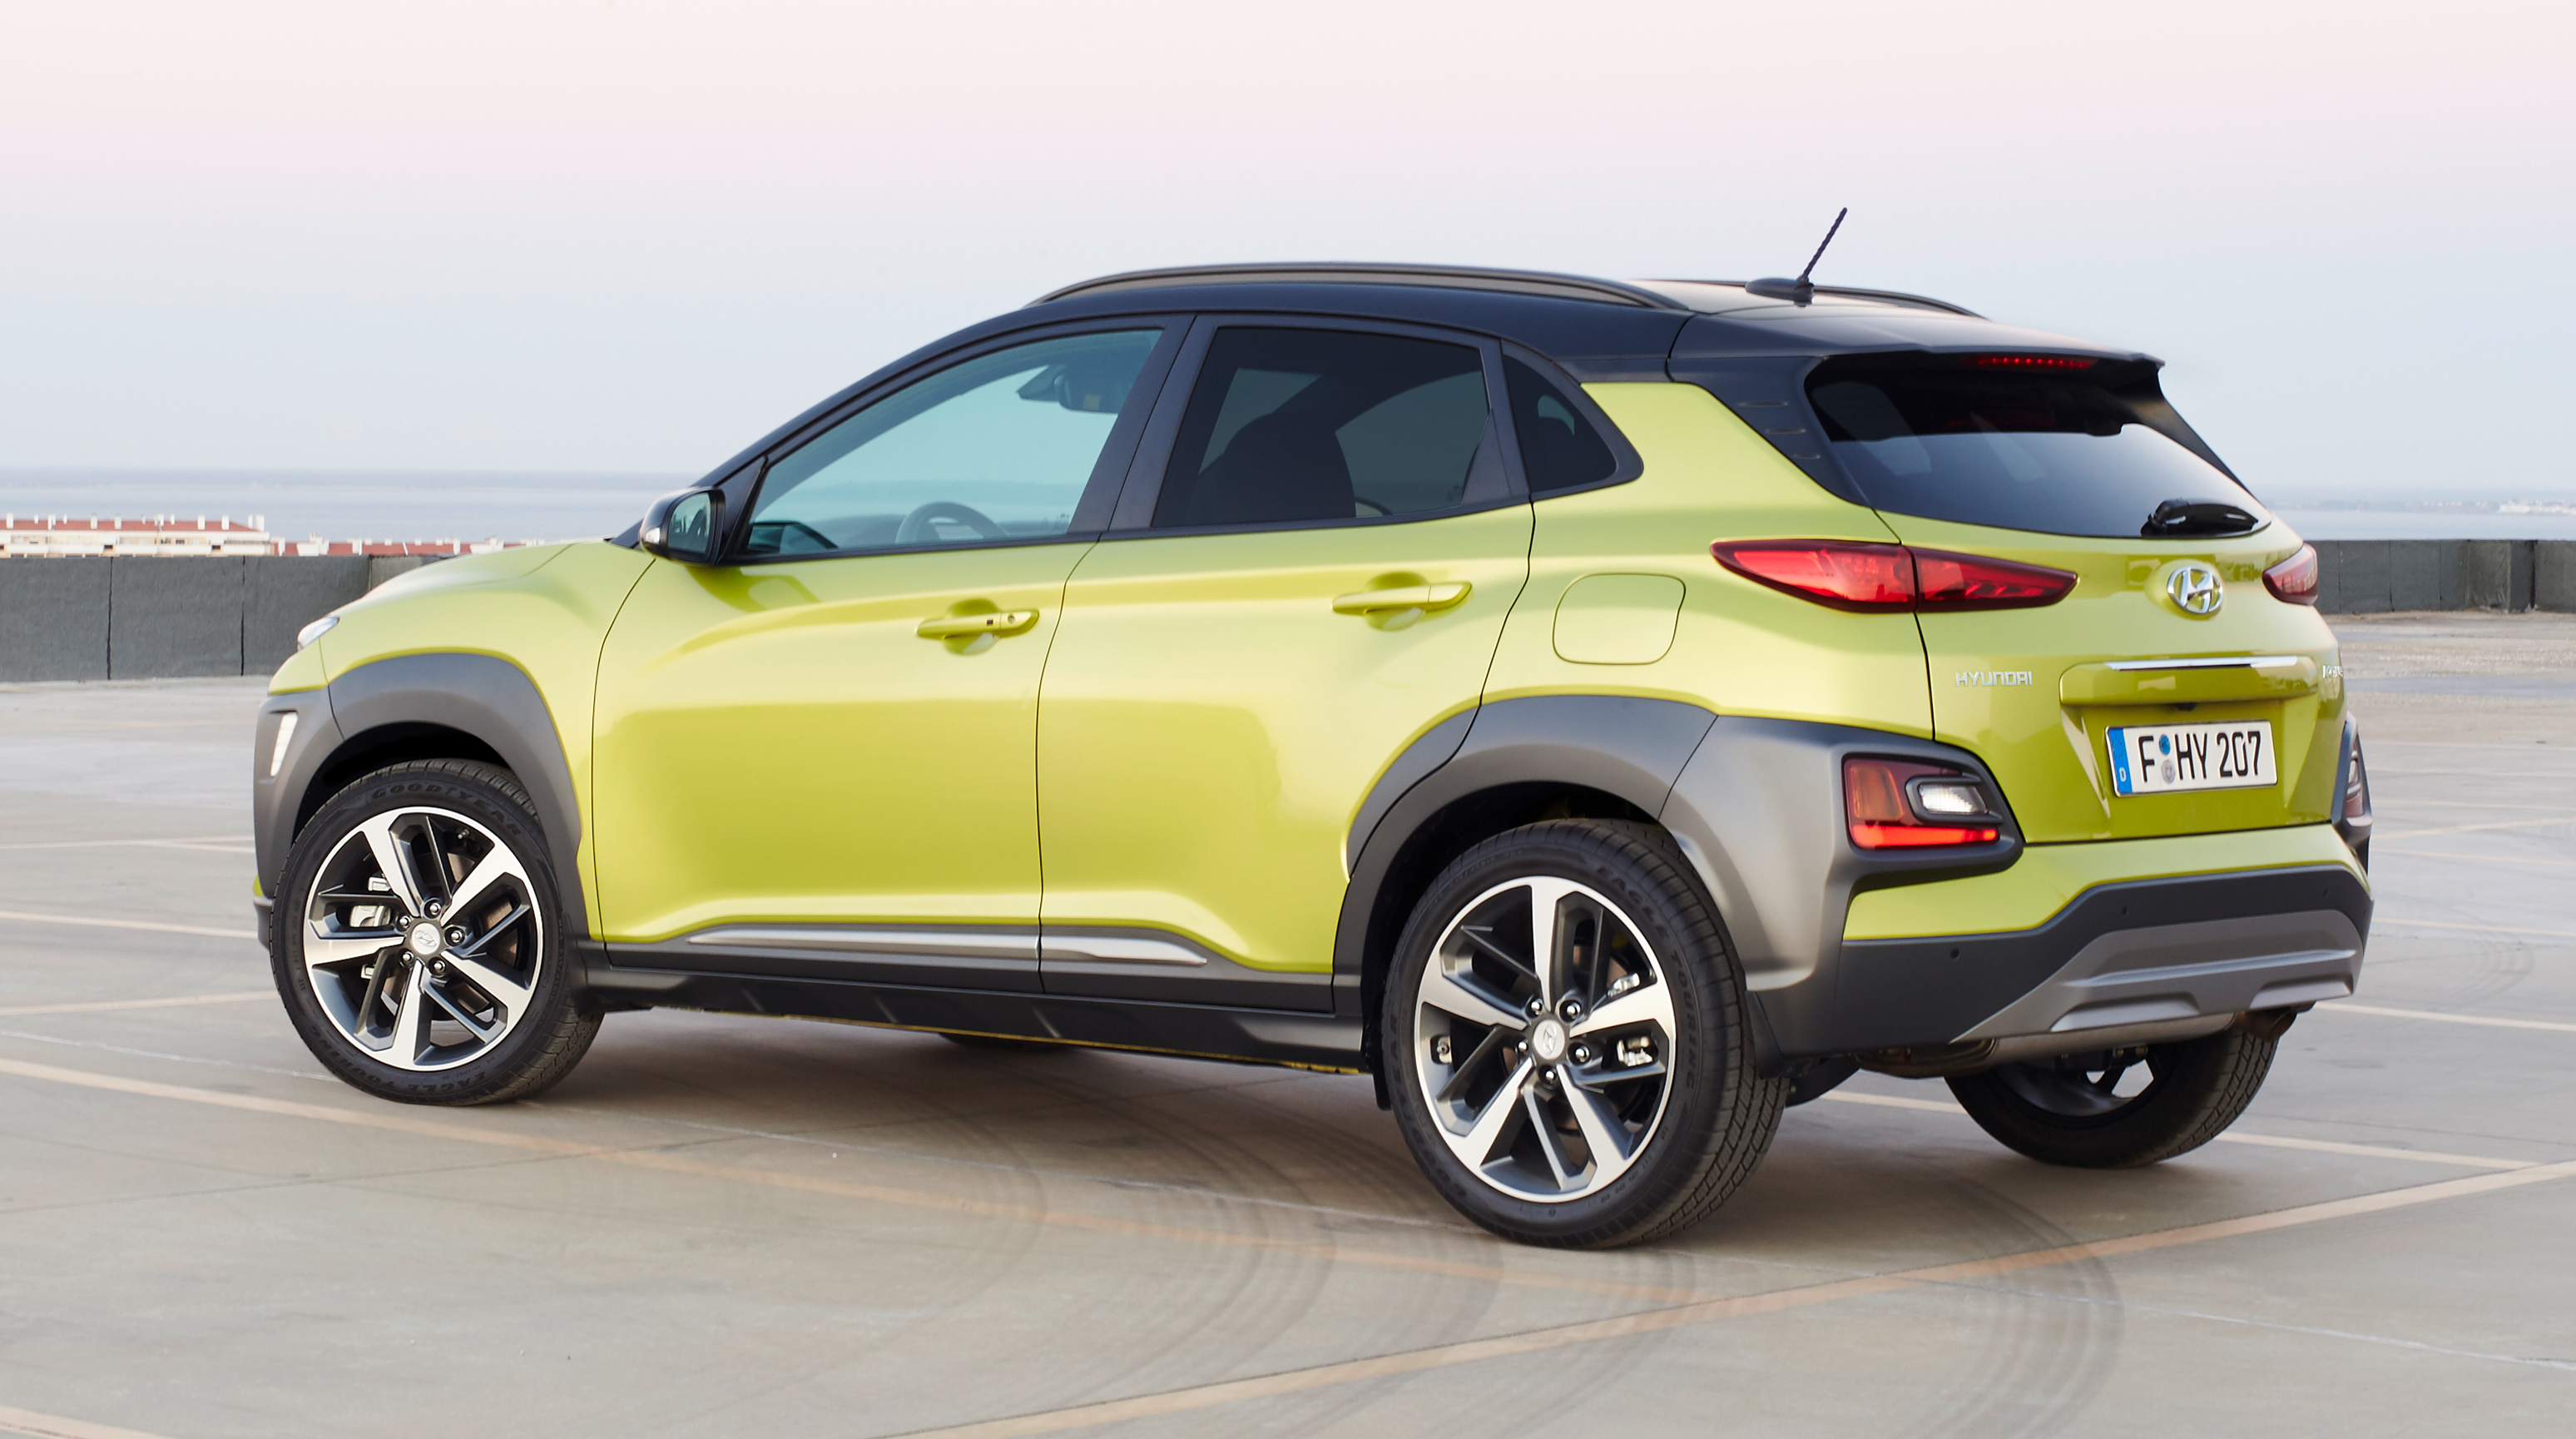 GALLERY: Hyundai Kona on the road, with interior Image 672065